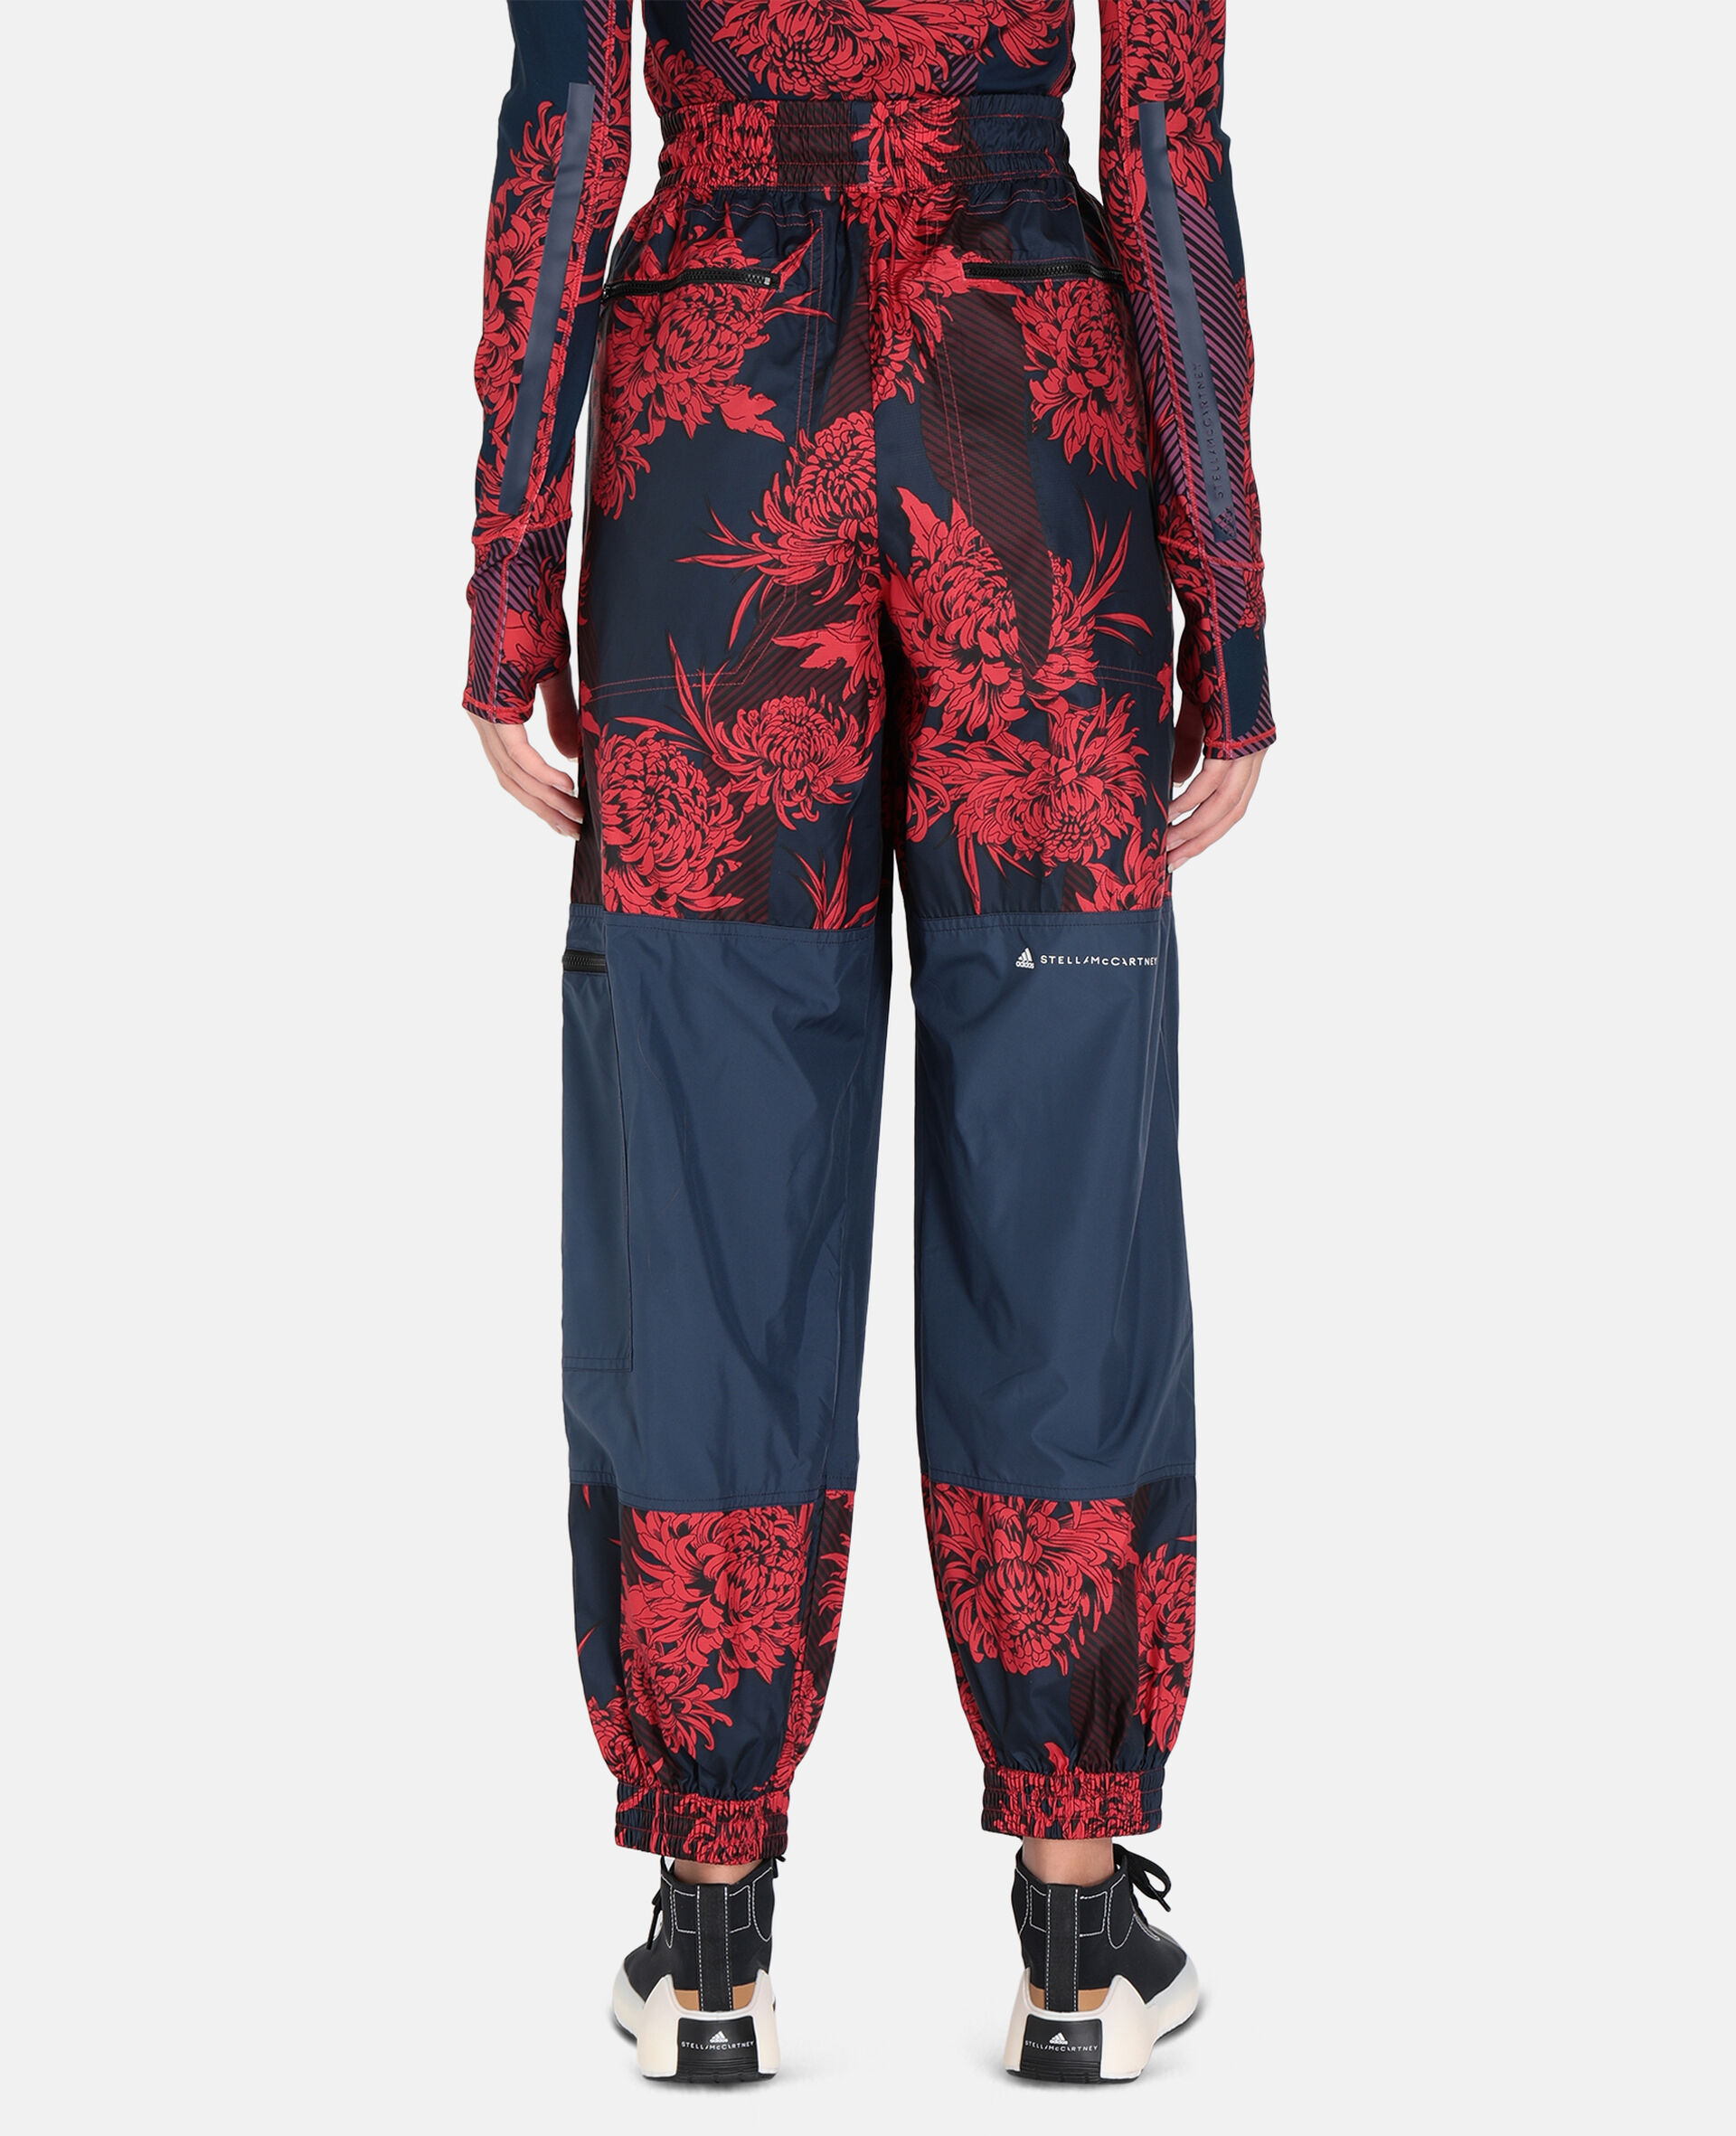 Future Playground Woven Training Pants-Red-large image number 2